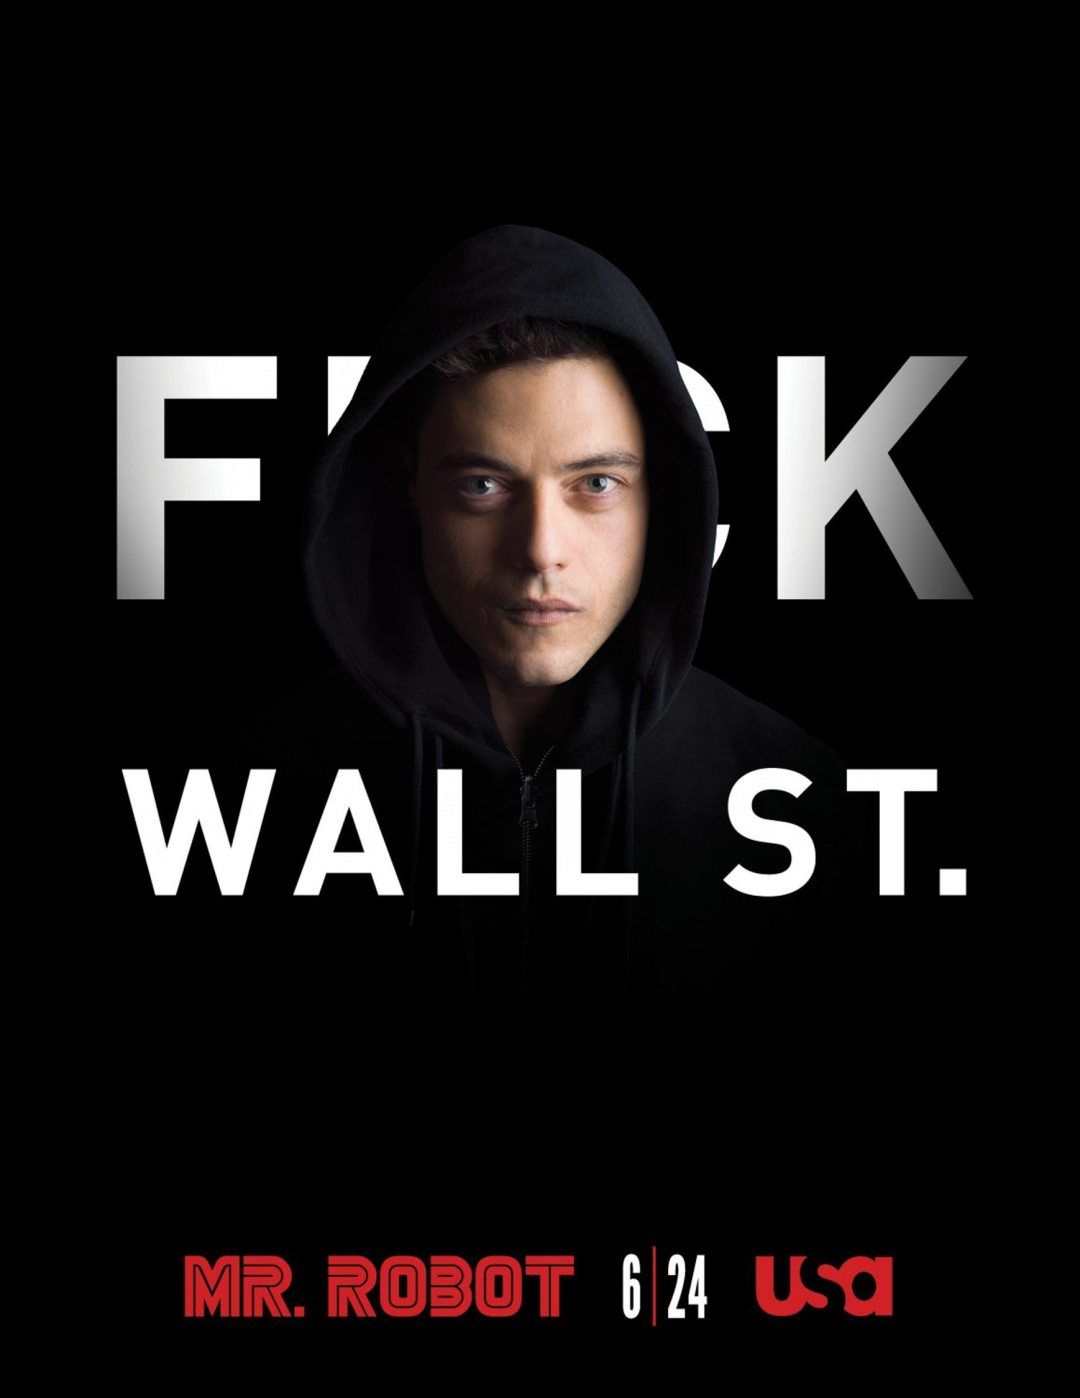 Mr. Robot (1159 x 1500) VoicesFILM.com-3